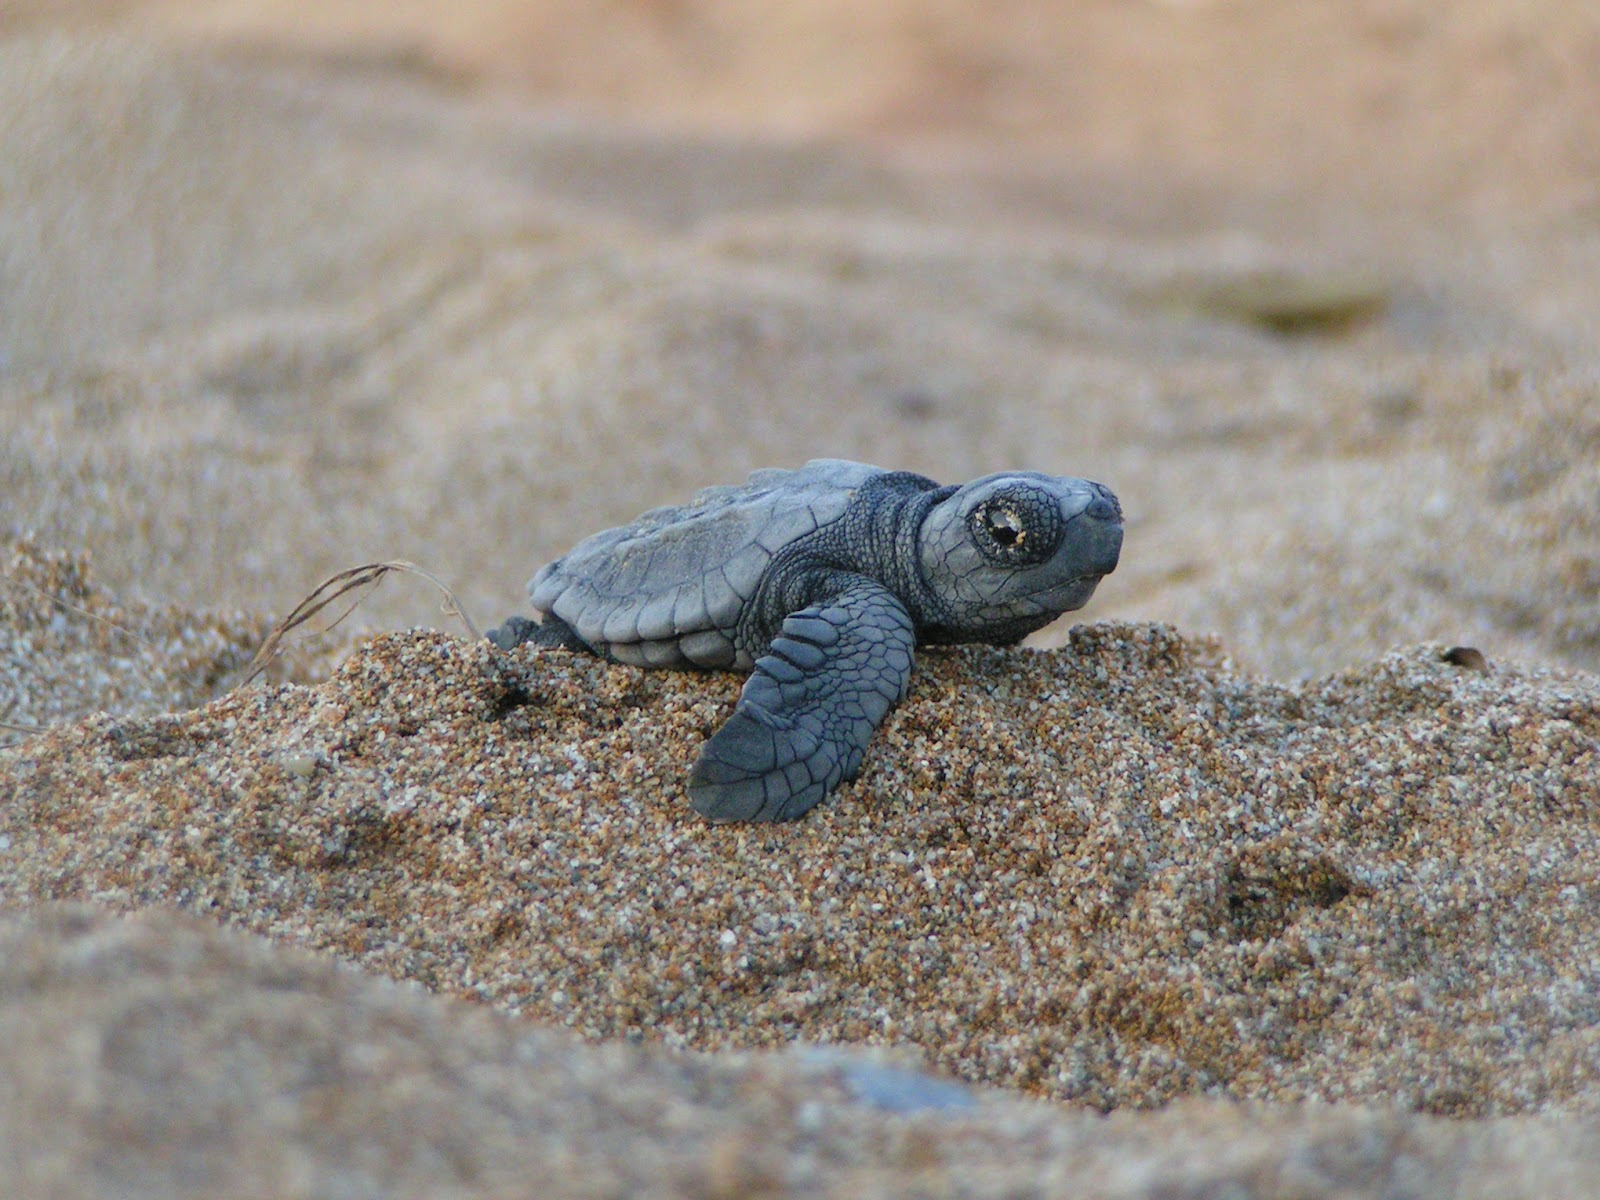 The Baby Turtle | Free National Geographic Pix - photo#37